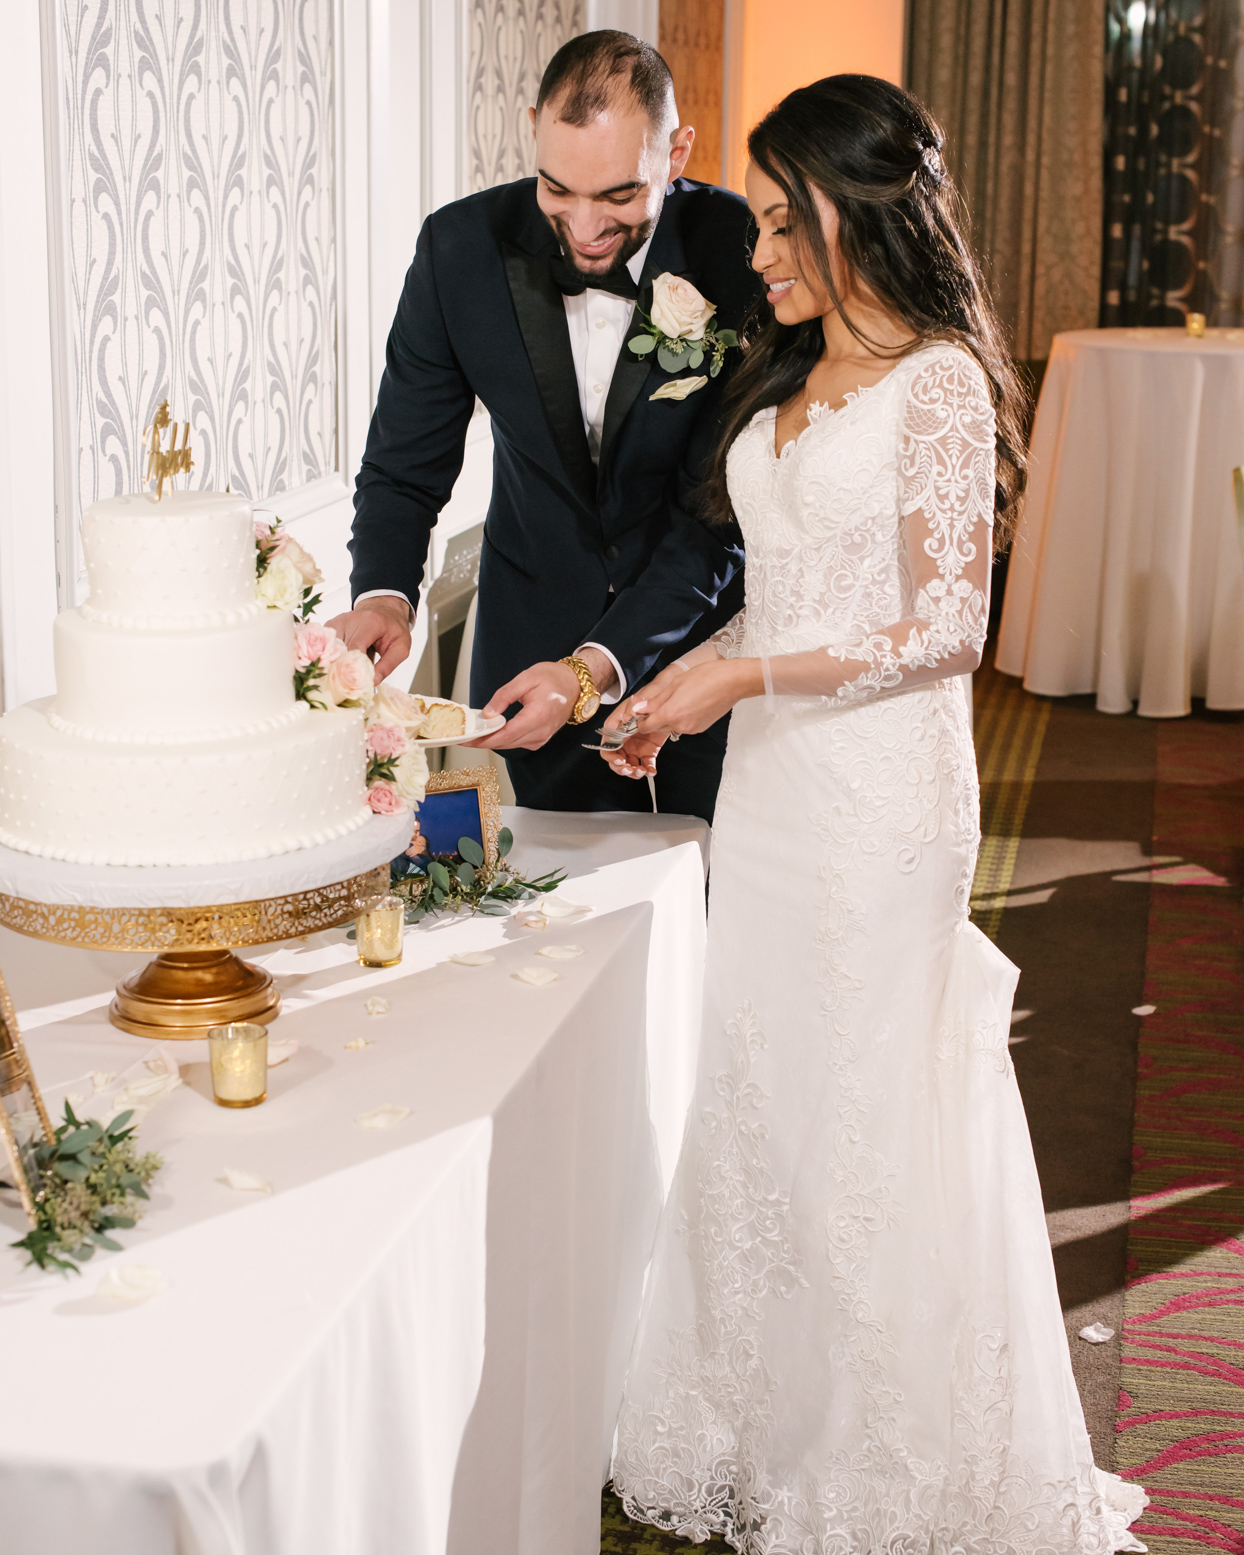 bride and groom cutting cake on gold stand